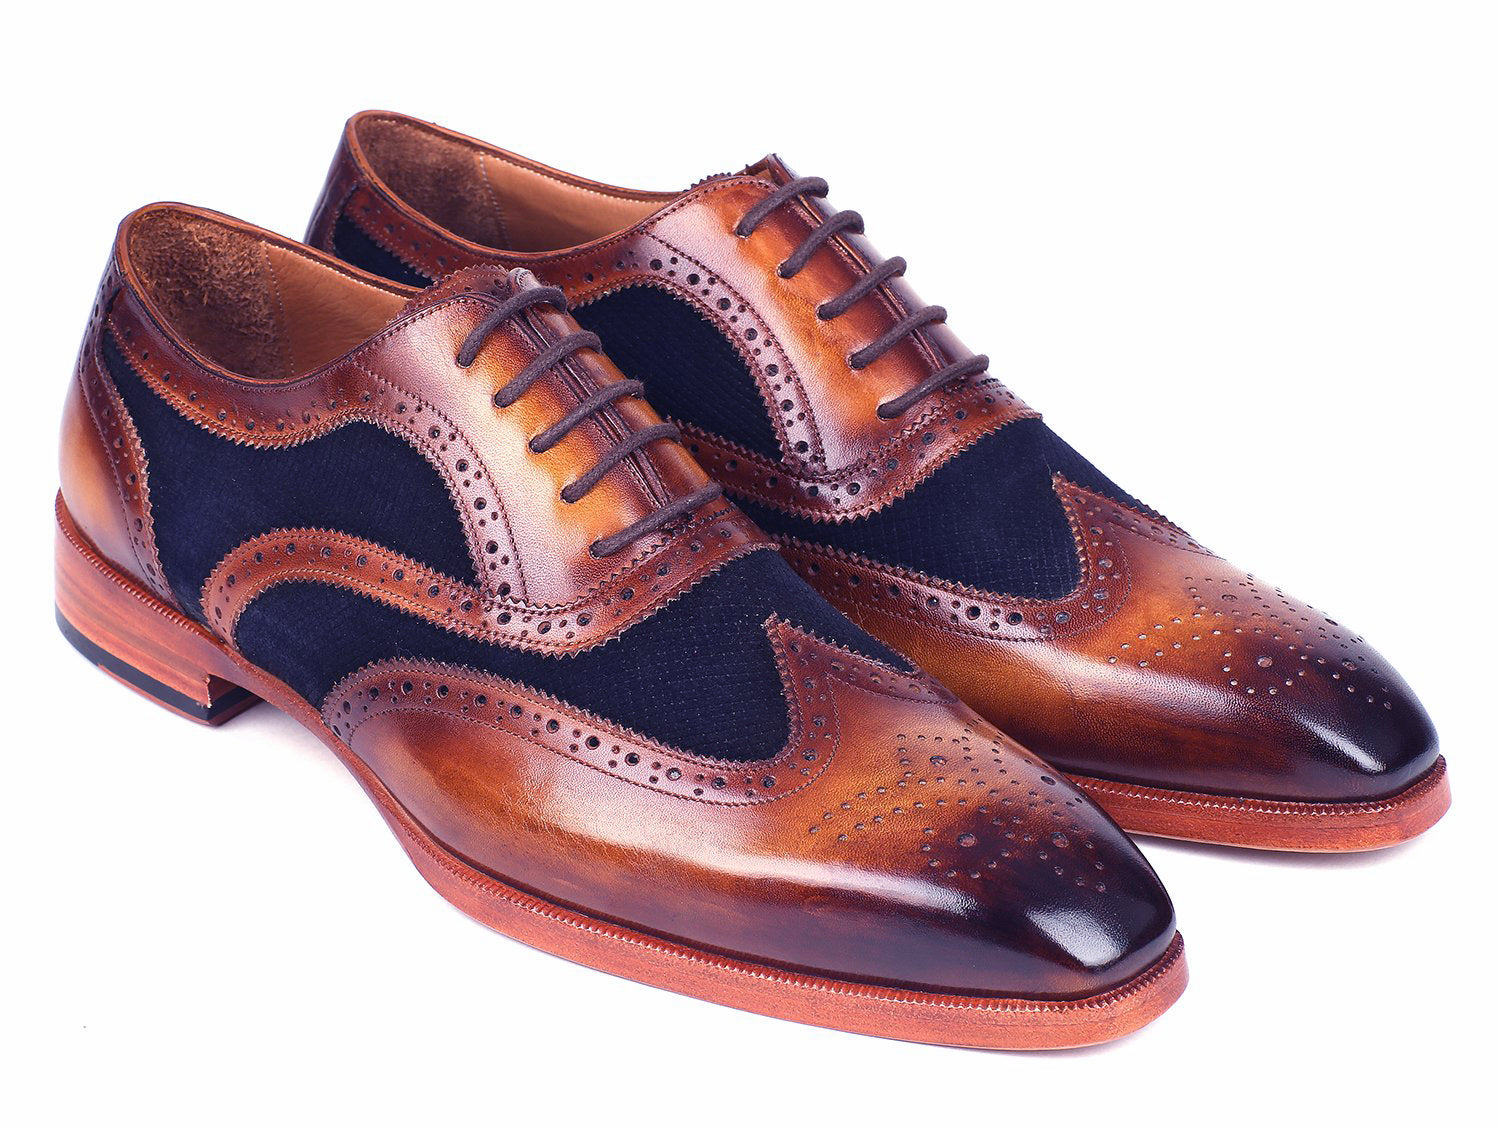 d317803cffc Paul Parkman Brown Leather   Navy Suede Oxfords - TieThis Neckwear and  Accessories and TieThis.